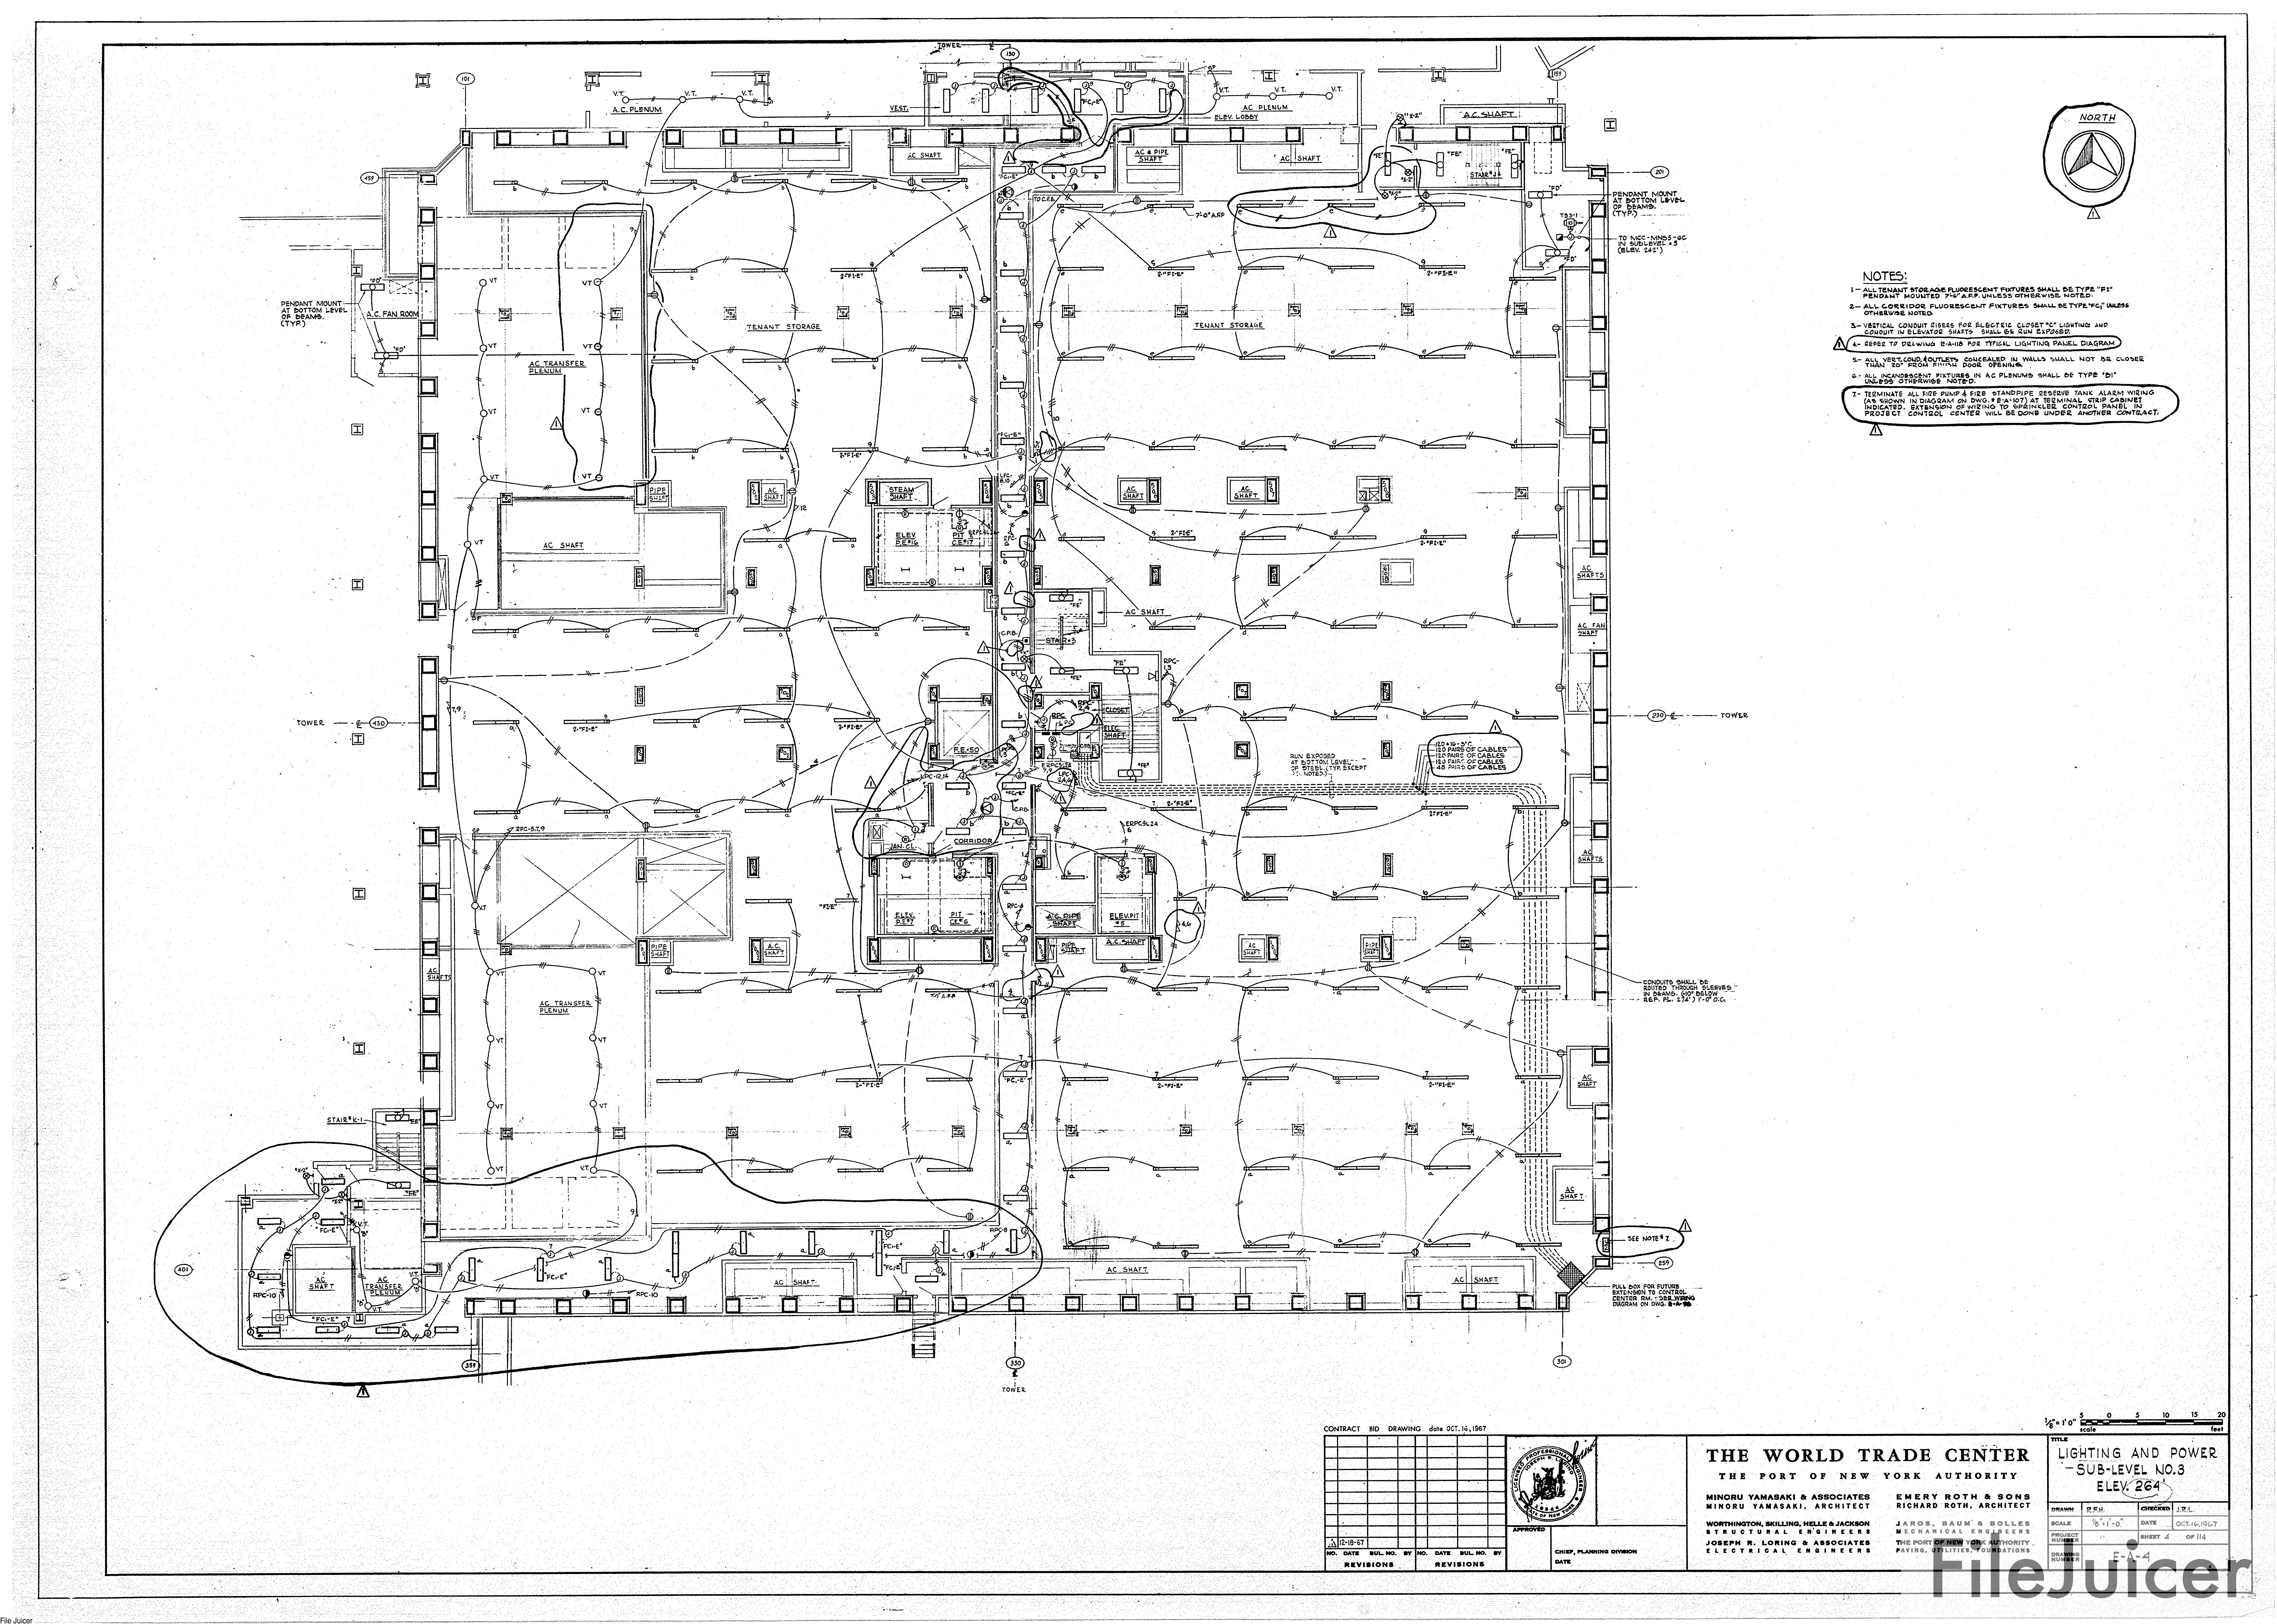 Table Of World Trade Center Tower A Drawings Electrical Diagram Elevator Lighting Power Sublevelno8 Elev264